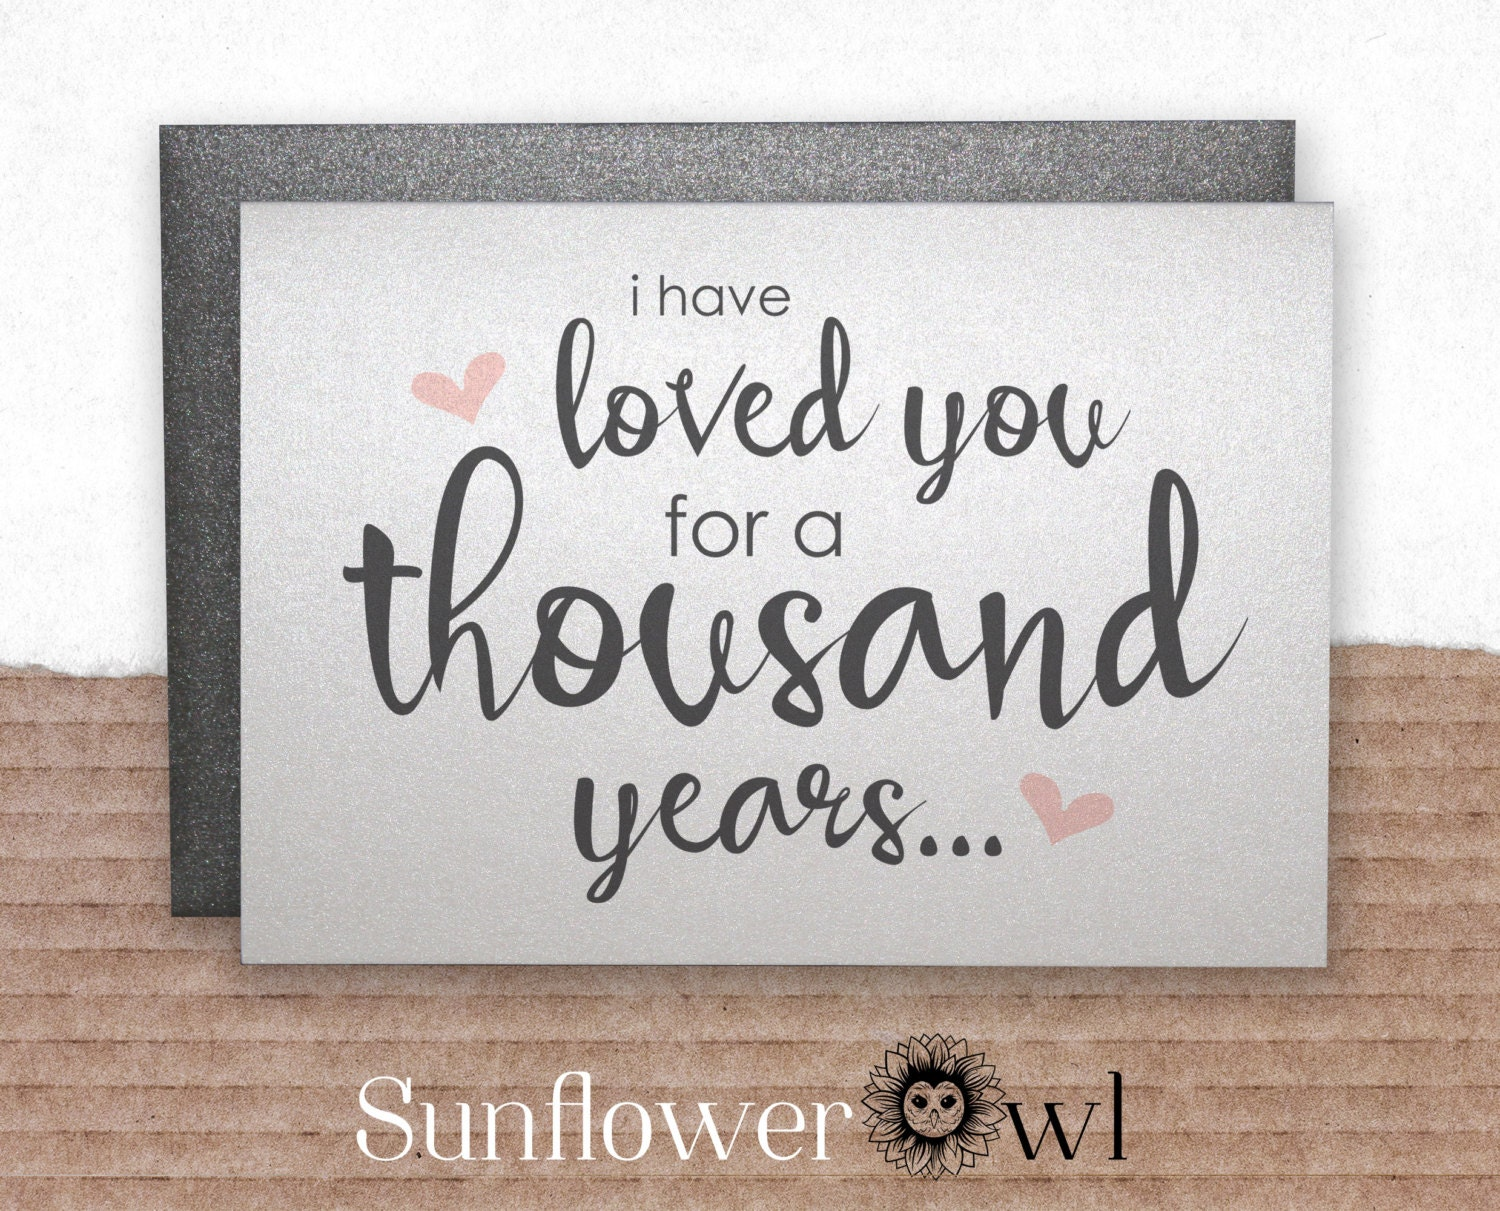 Wedding anniversary note from husband to wife picture ideas